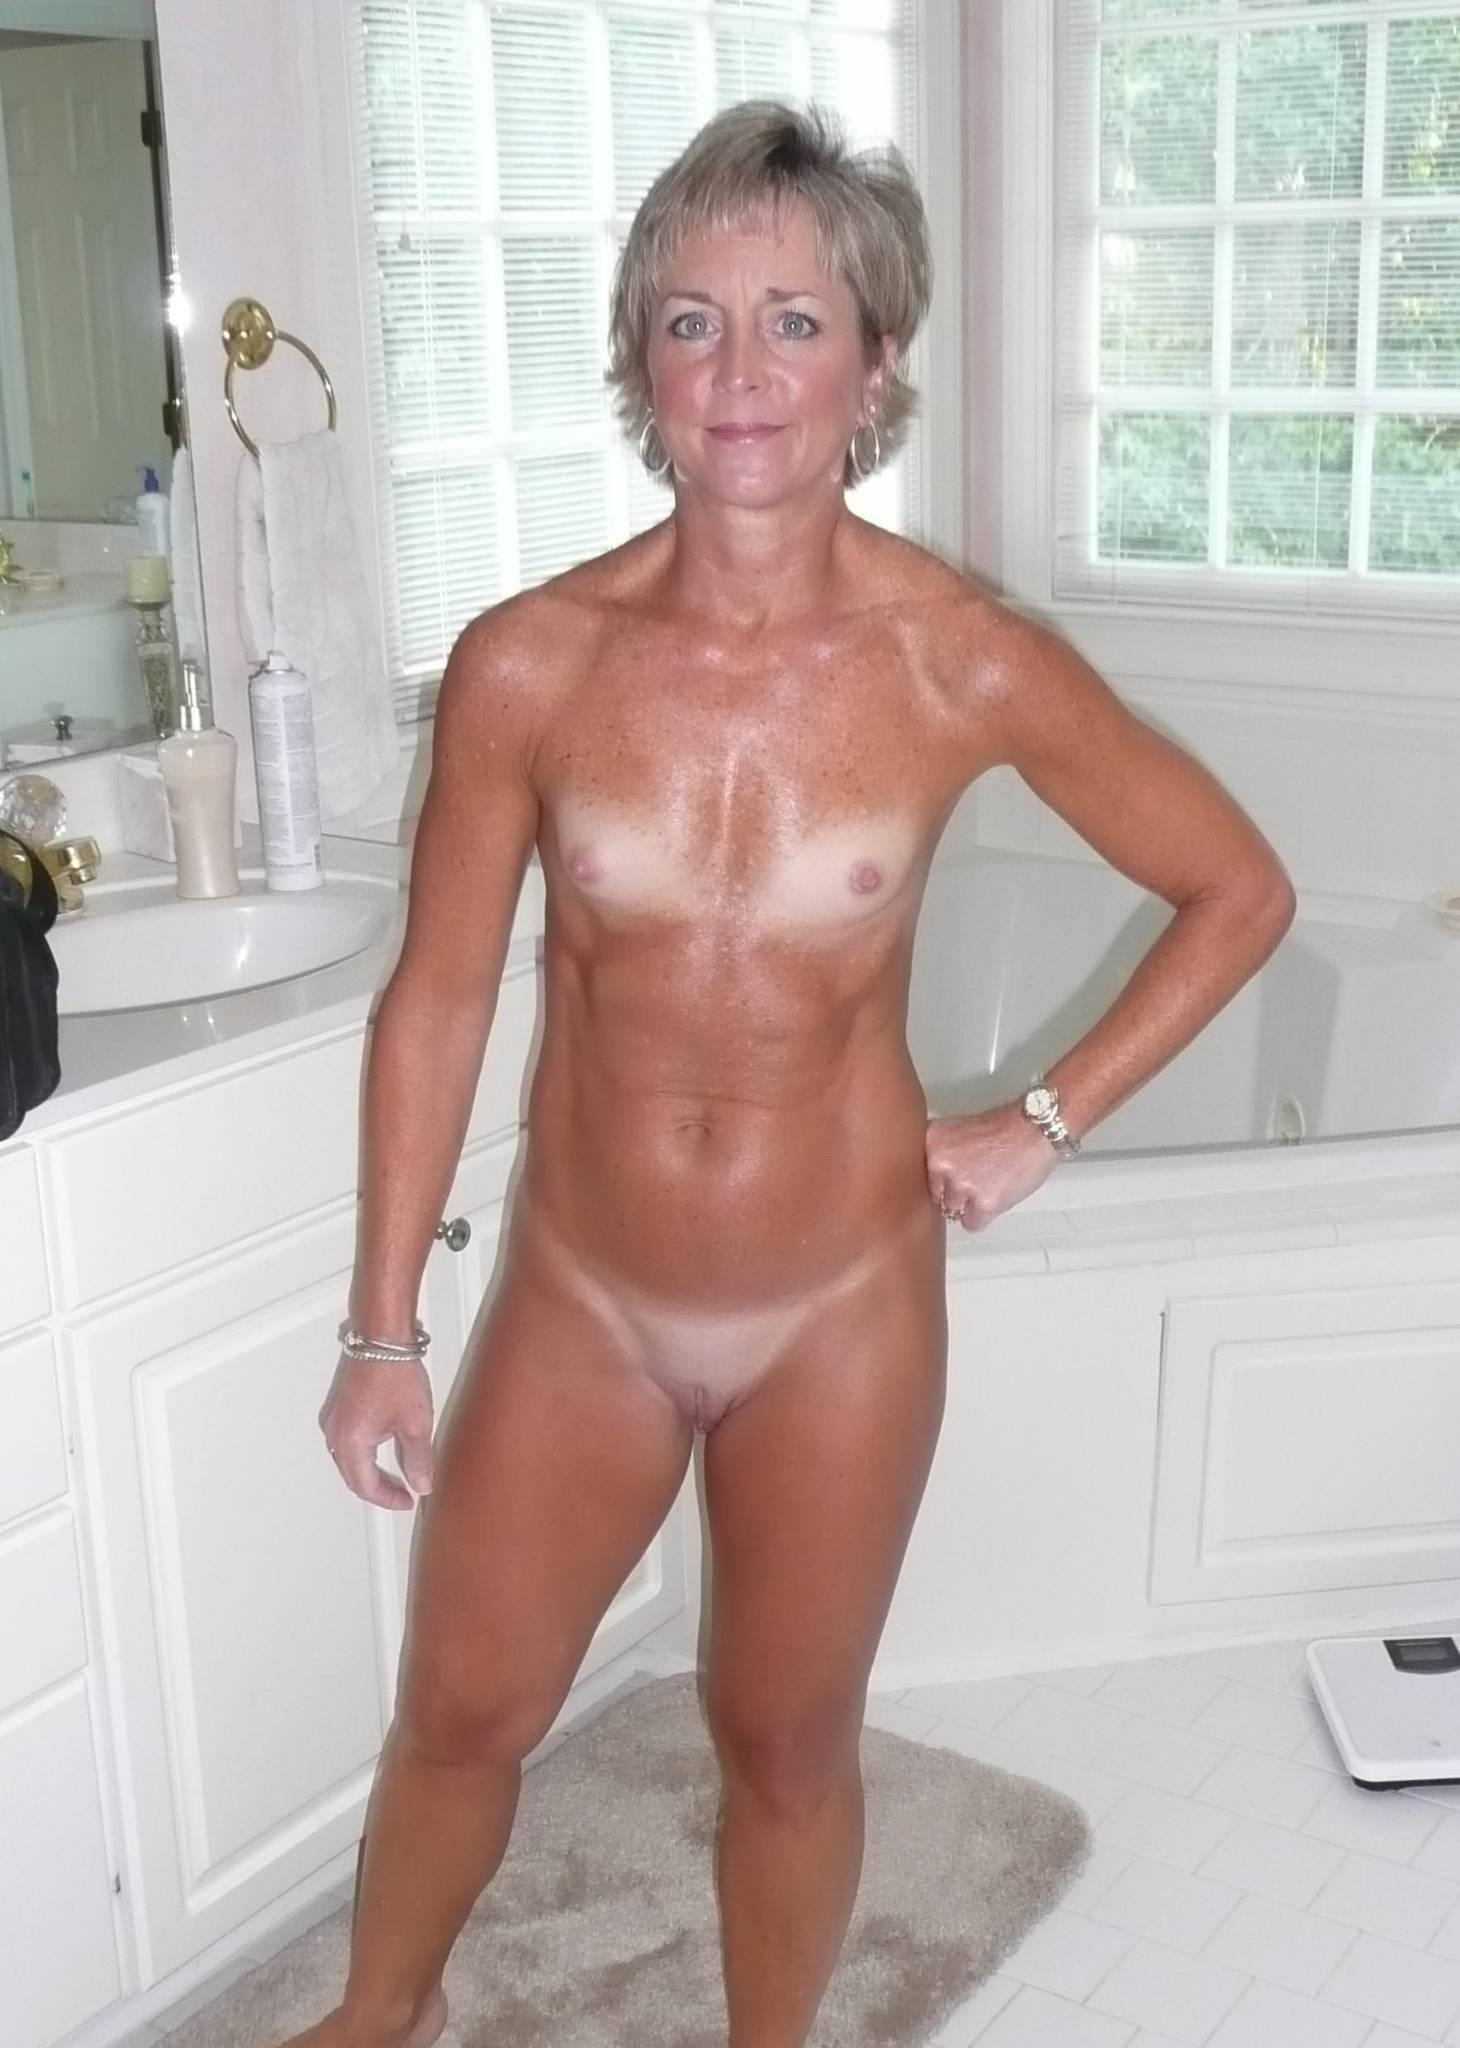 small tits/flat chests. perfection - mature moms and why we fuck